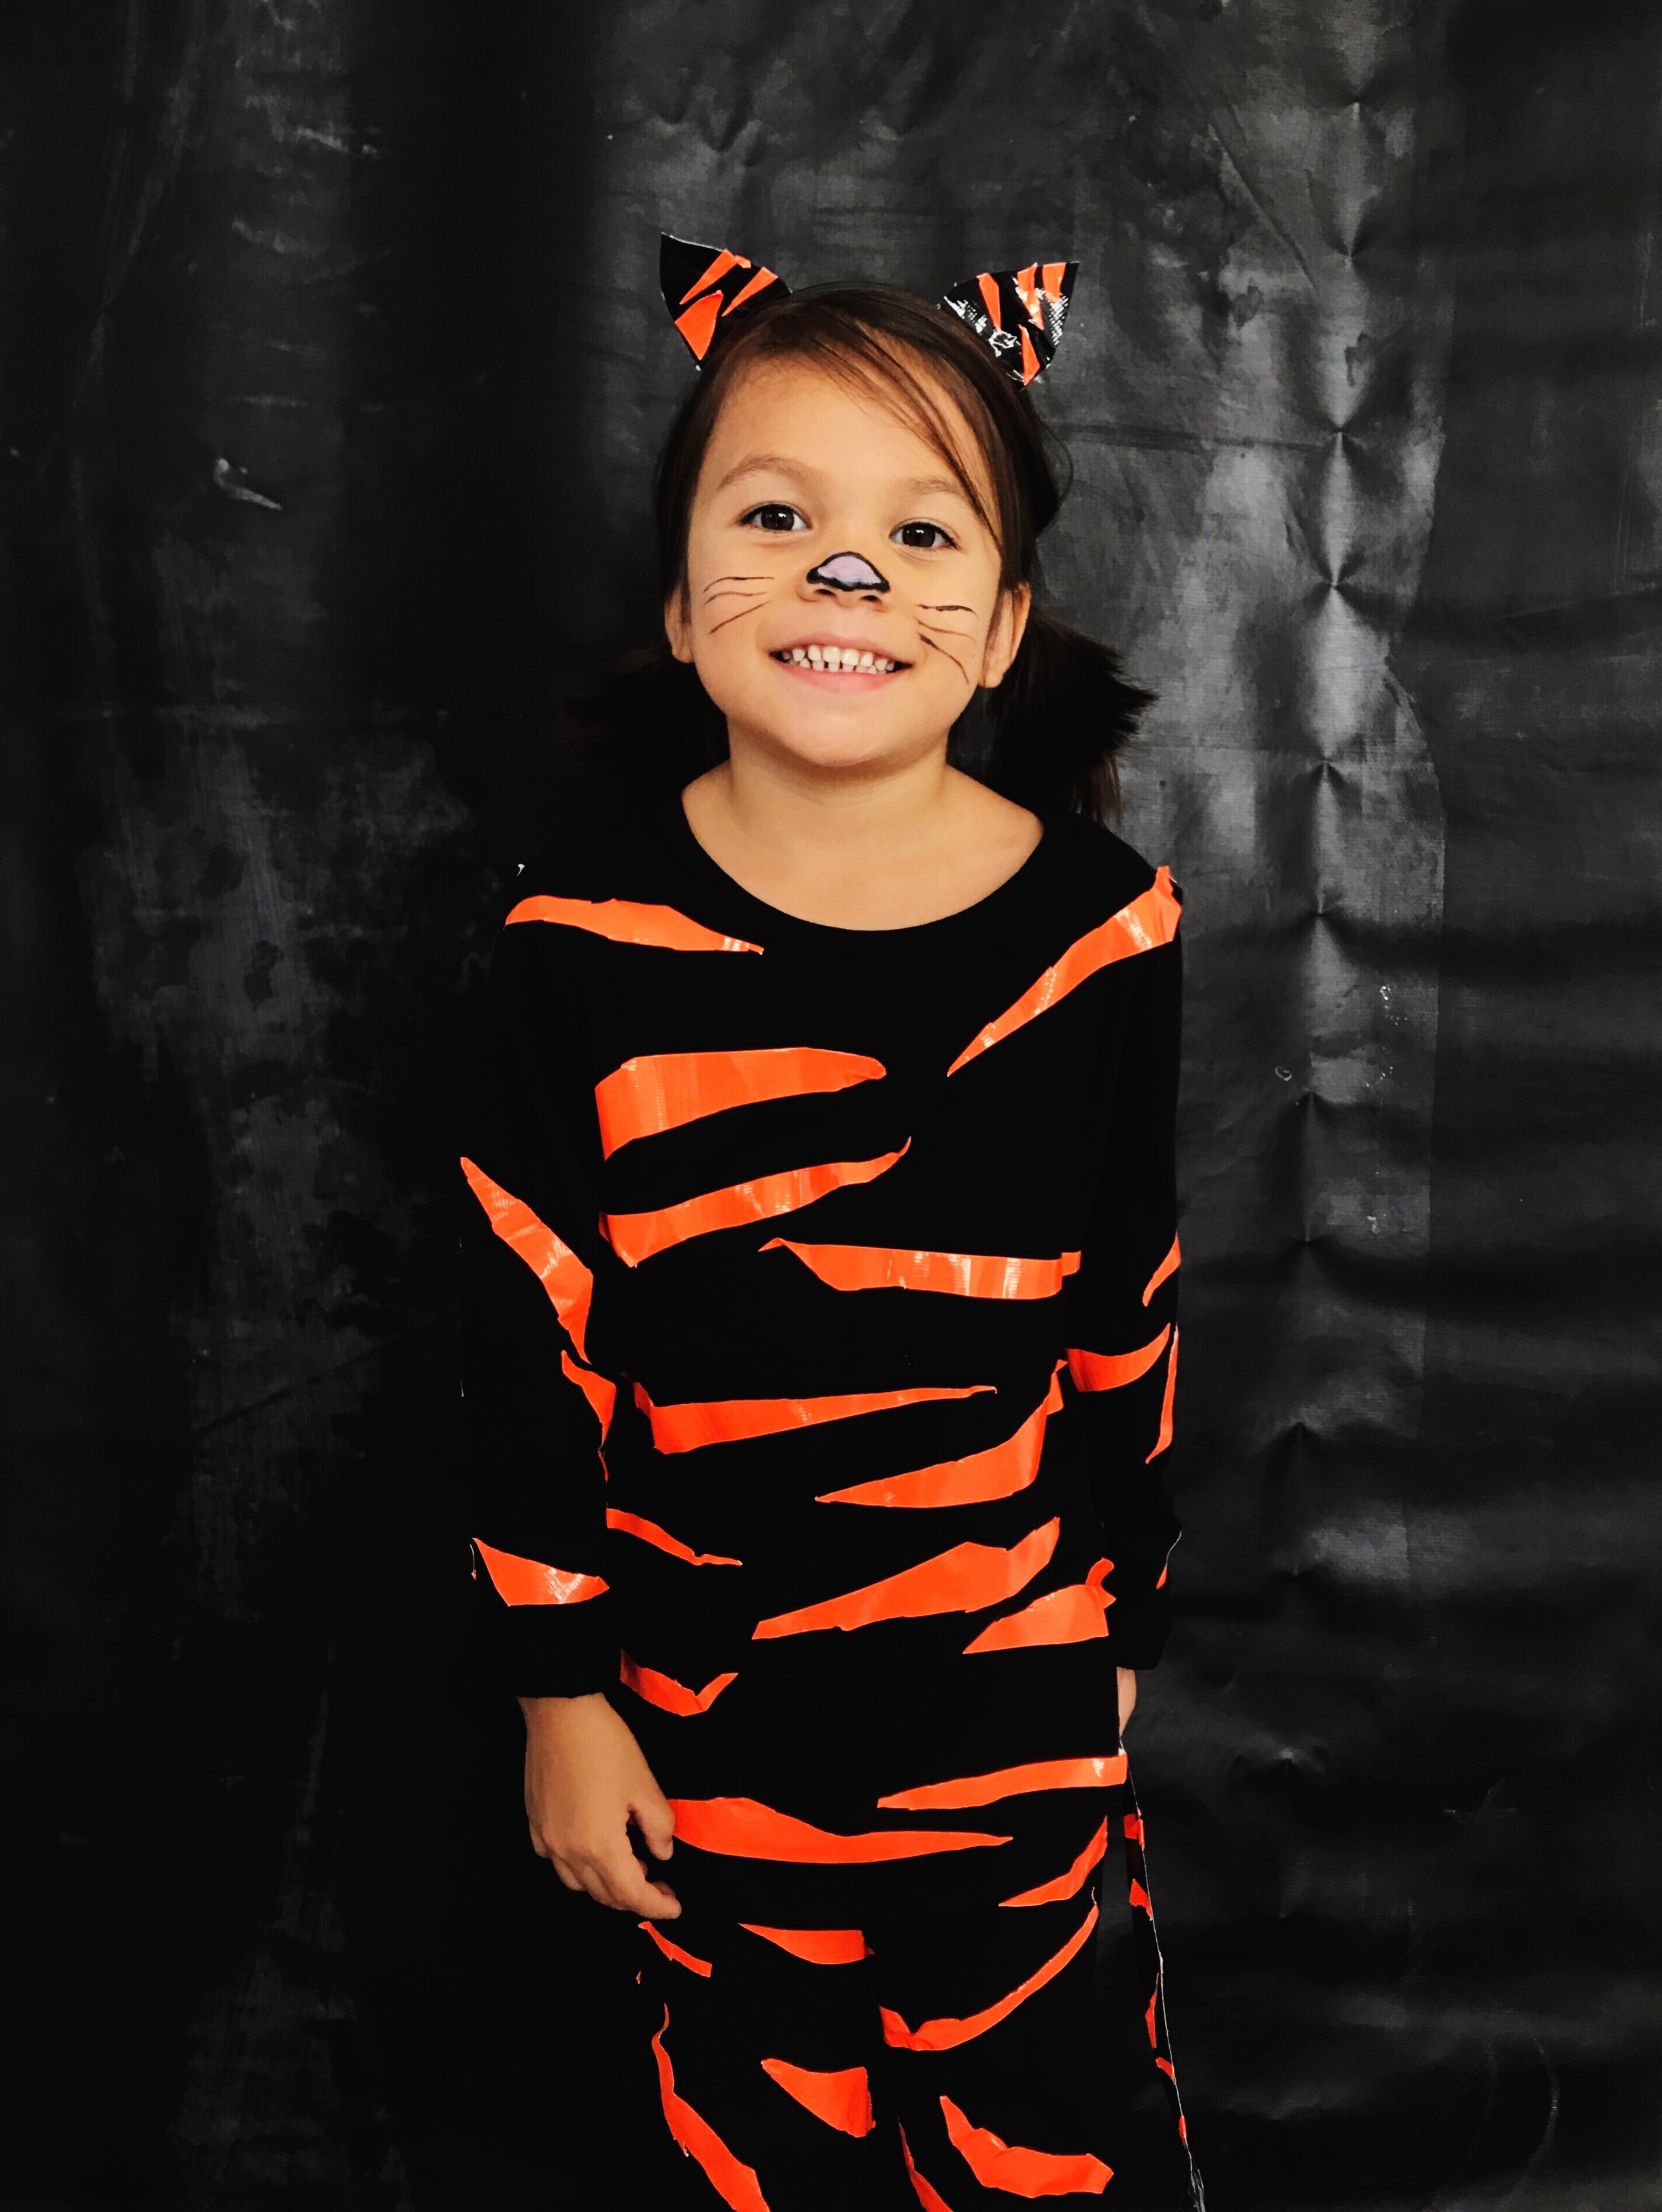 Diy tiger halloween costume duck tape babiekins magazine diy tiger costume babiekins mag solutioingenieria Images